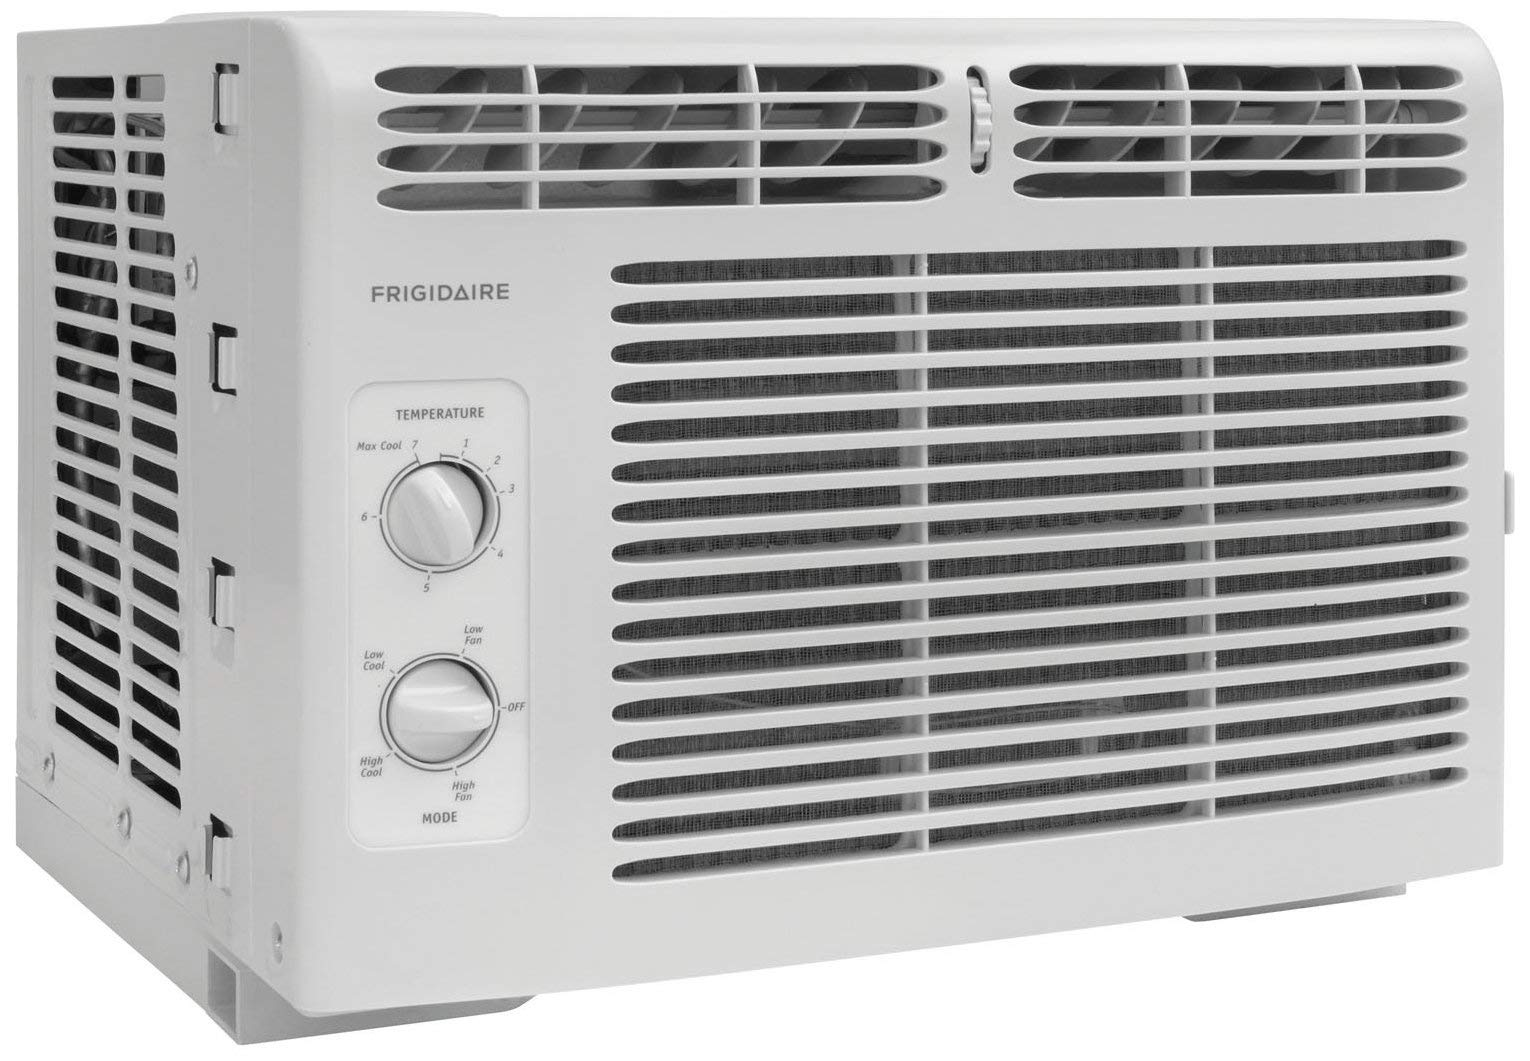 Frigidaire FFRA0511R1 5, 000 BTU 115V Window-Mounted Mini-Compact Air Conditioner with Mechanical Controls (Renewed) by FRIGIDAIRE